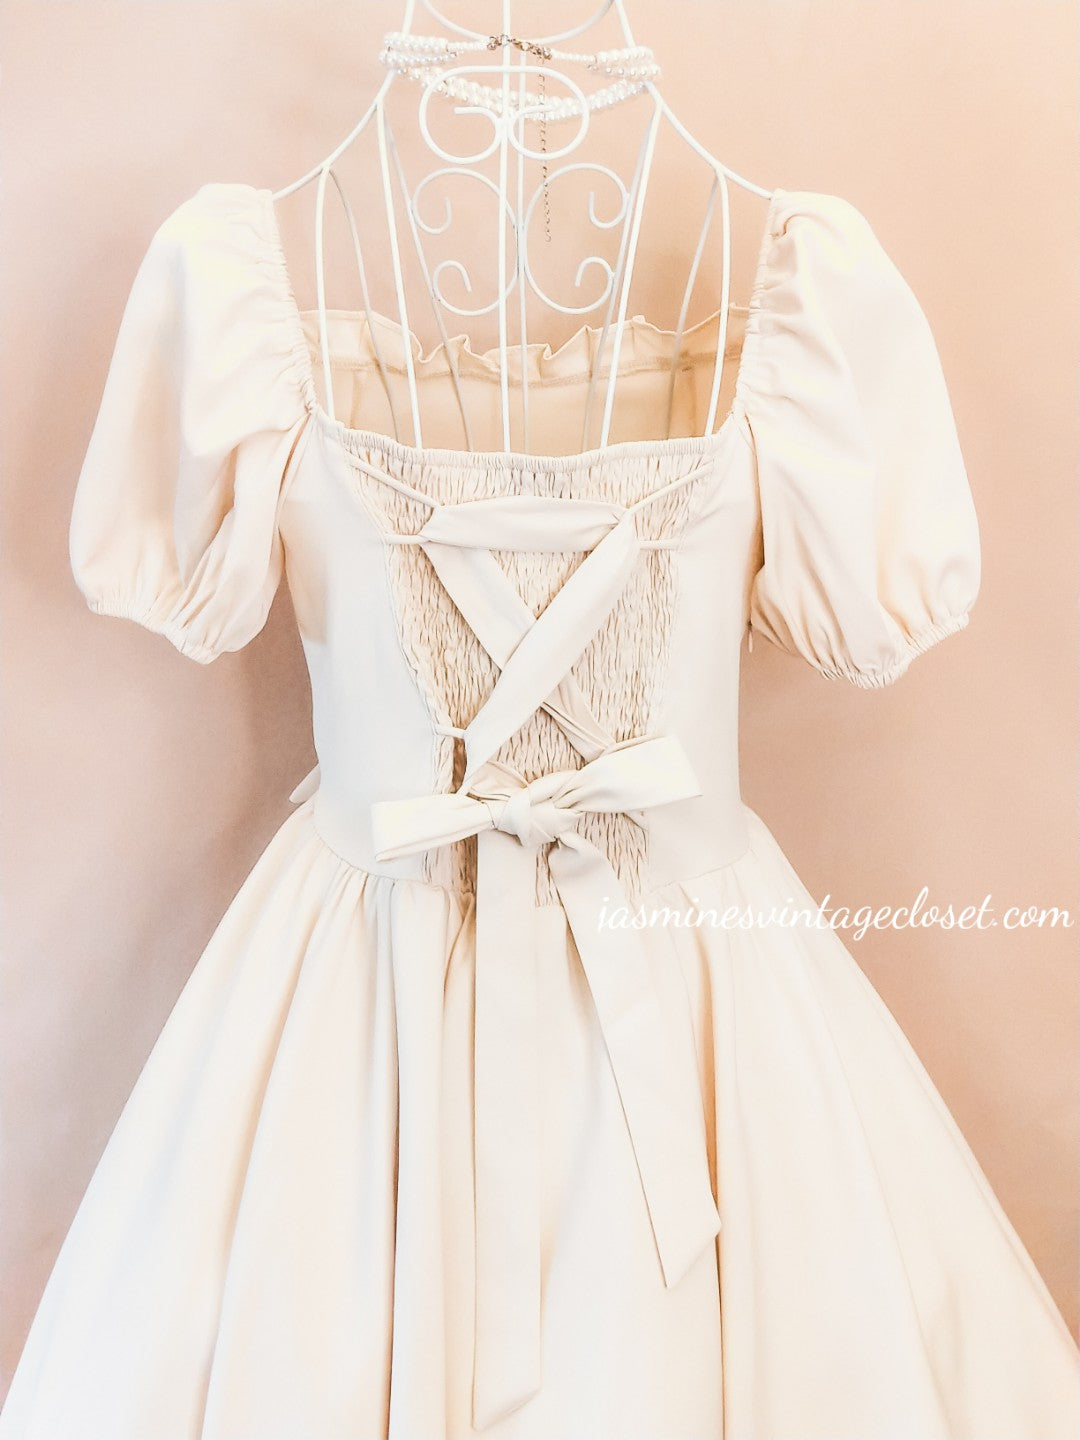 50's Ballroom Princess Dress